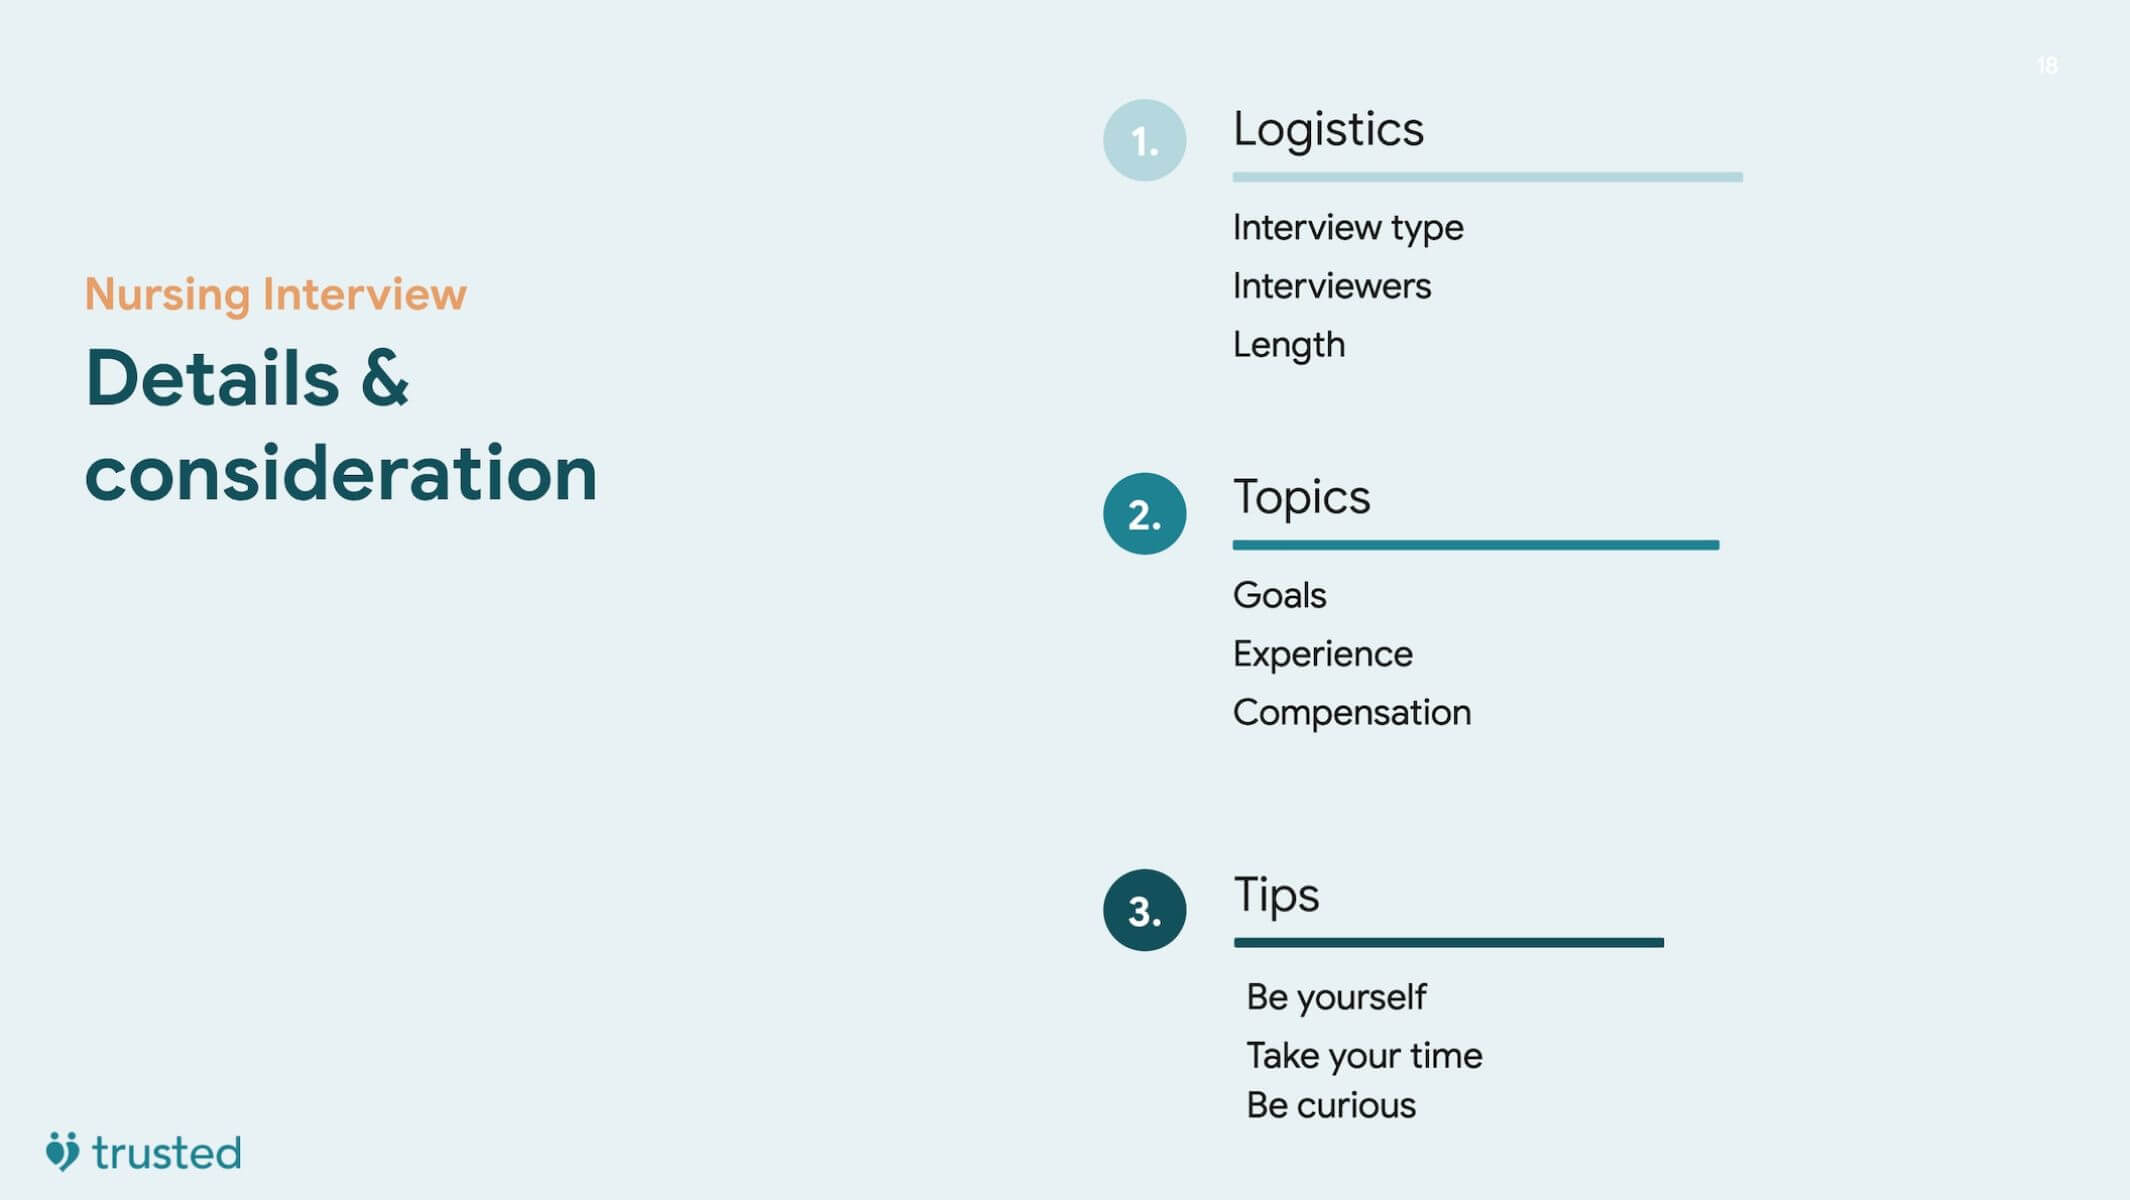 introductory slide highlighting the importance of logistics, topics, and tips when preparing for your nursing interview